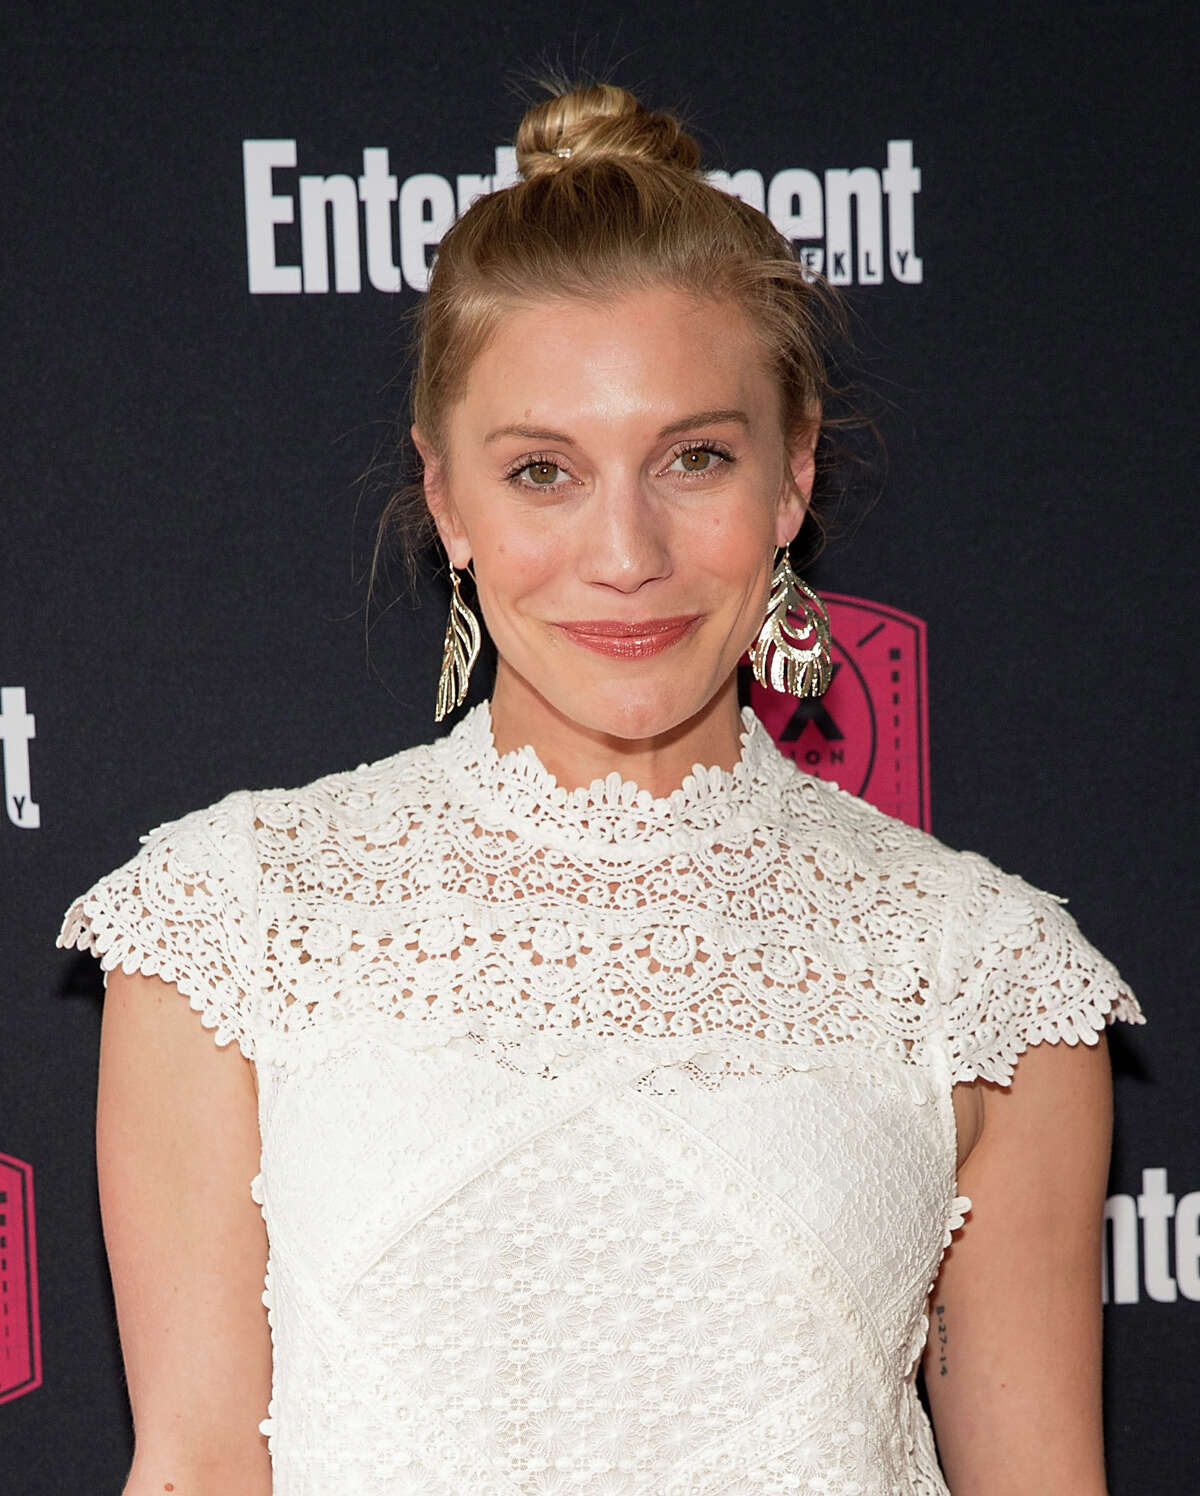 Katee Sackhoff attends the closing night reunion panel of Battlestar Galactica presented by Entertainment Weekly and SYFY during the ATX Television Festival on June 10, 2017 in Austin, Texas.